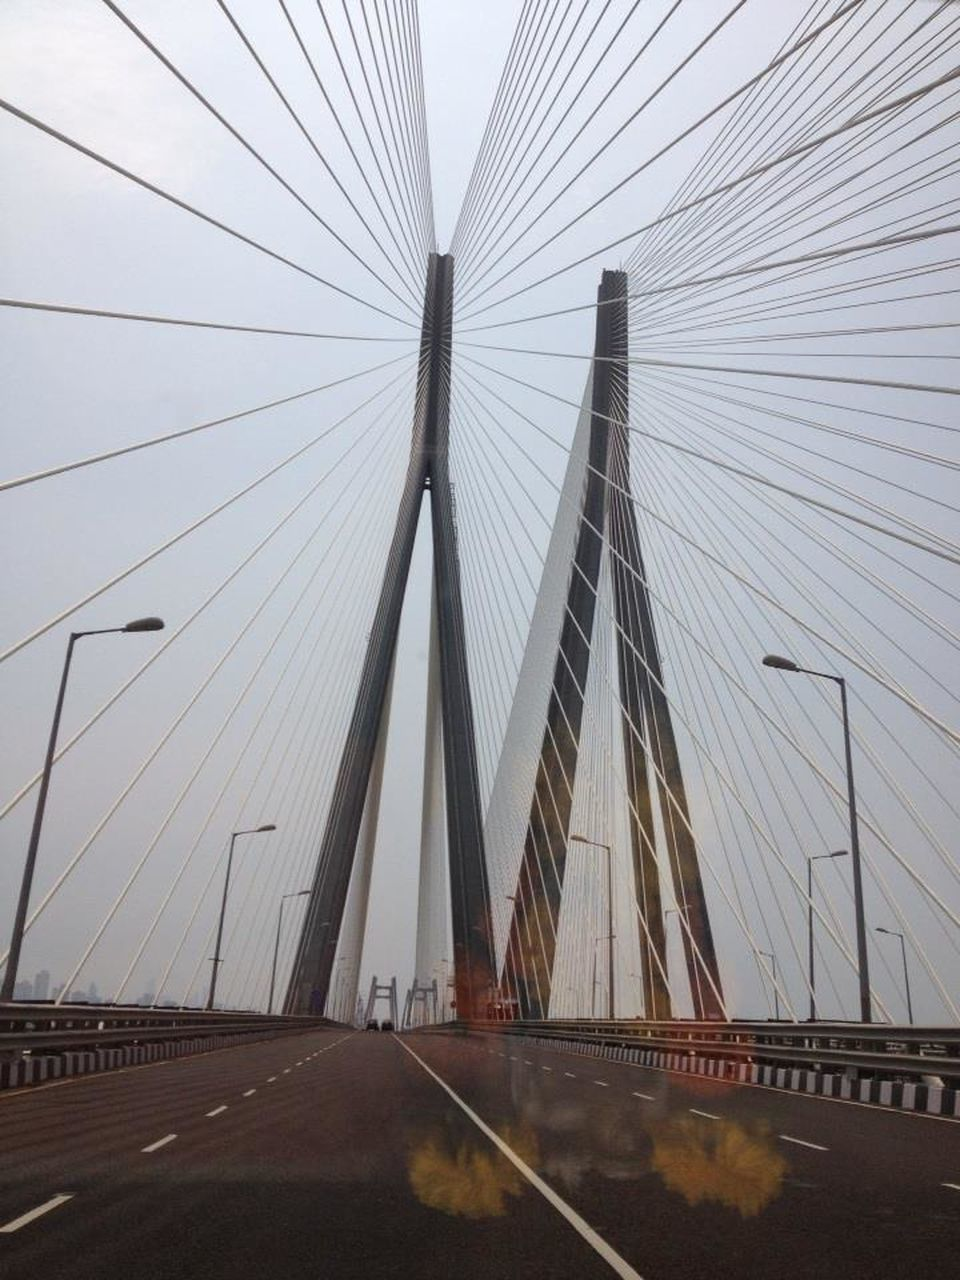 suspension bridge, connection, transportation, bridge - man made structure, architecture, engineering, built structure, travel, travel destinations, the way forward, outdoors, bridge, day, city, cable, sky, road, no people, skyscraper, urban skyline, line